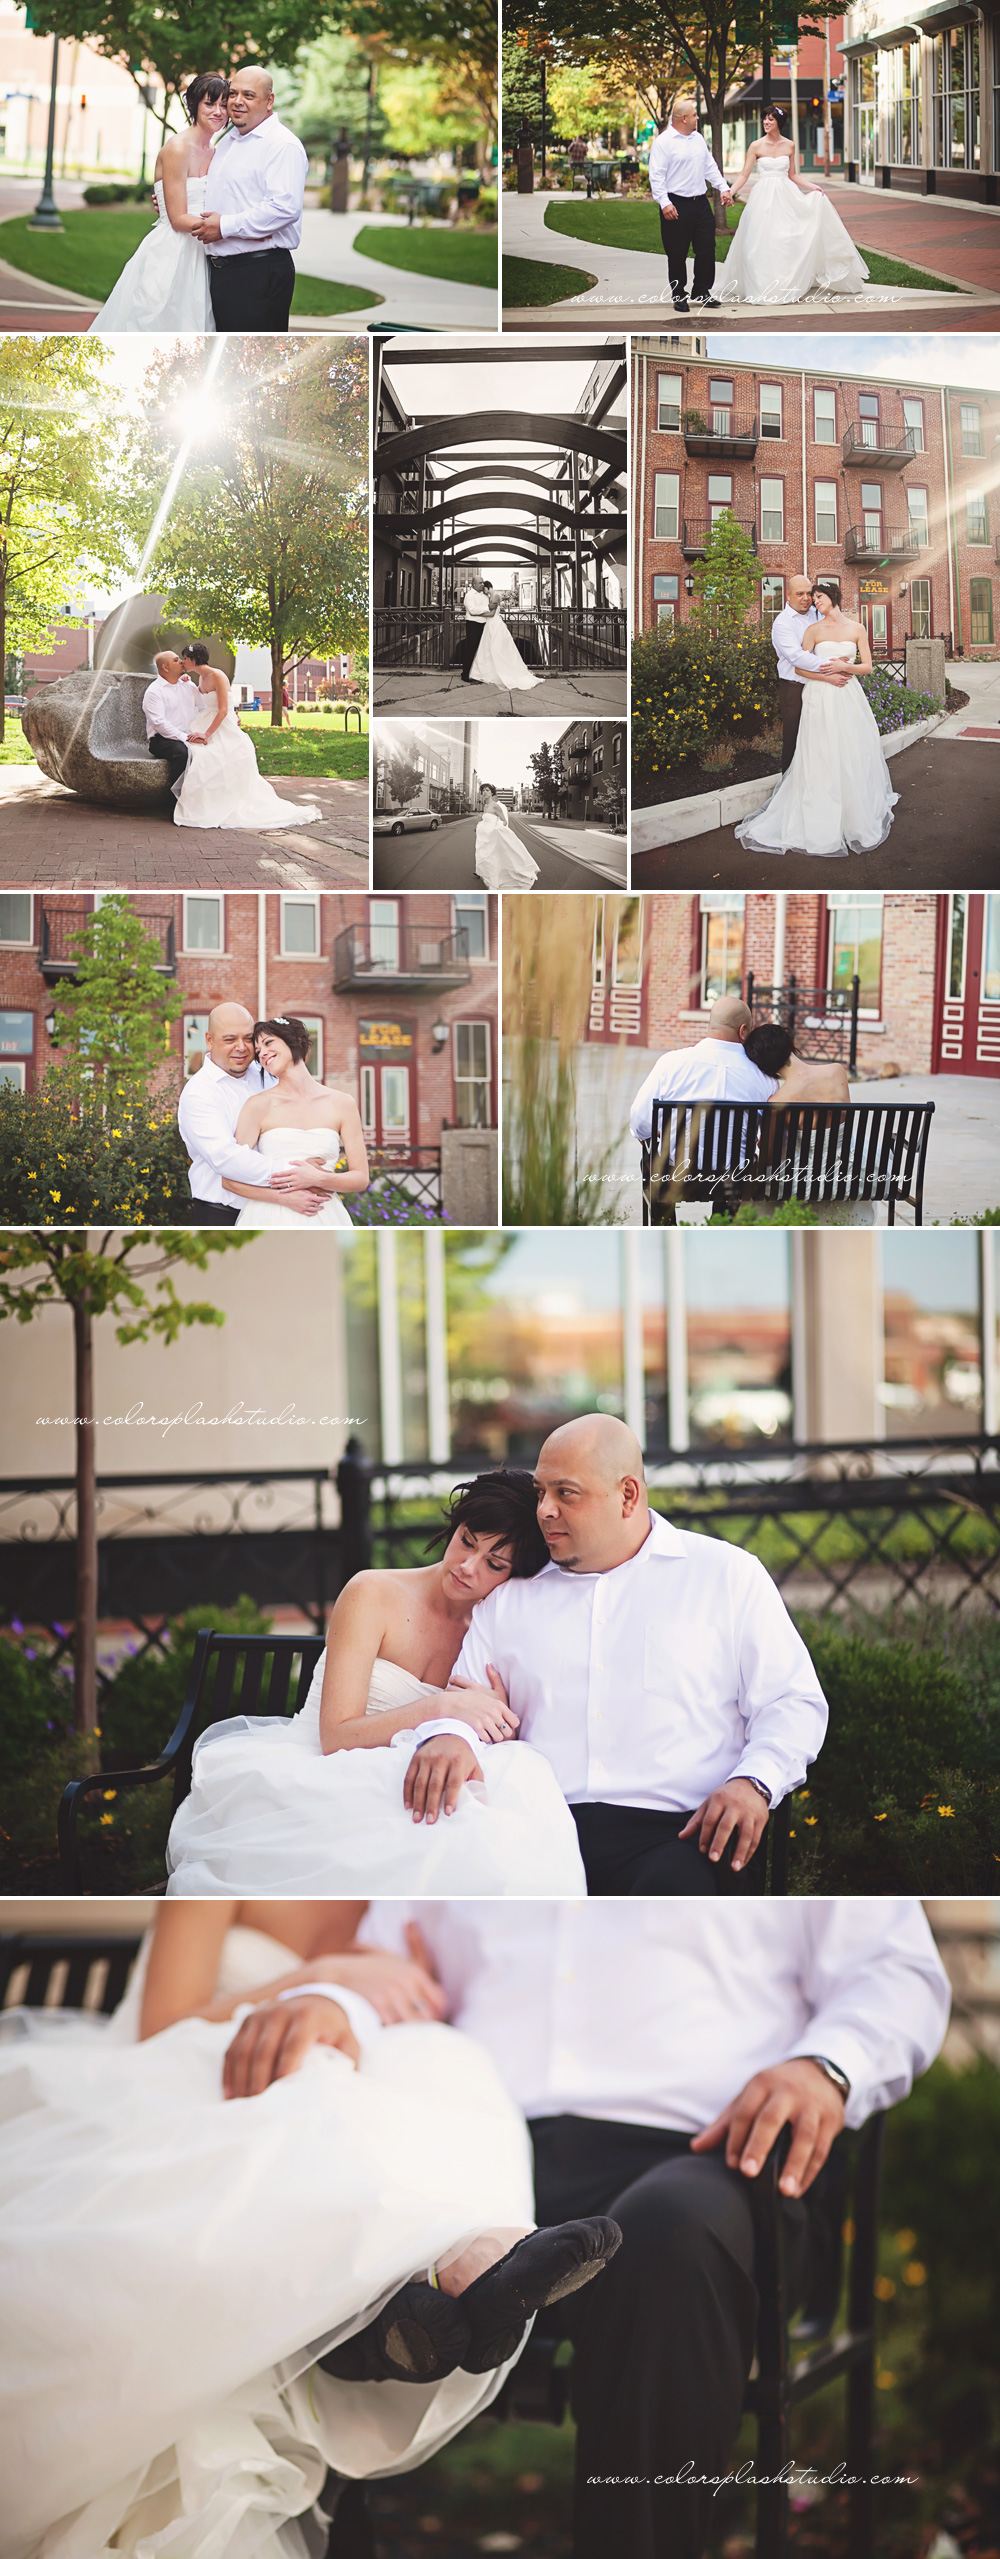 Wedding Photos Downtown Kalamazoo